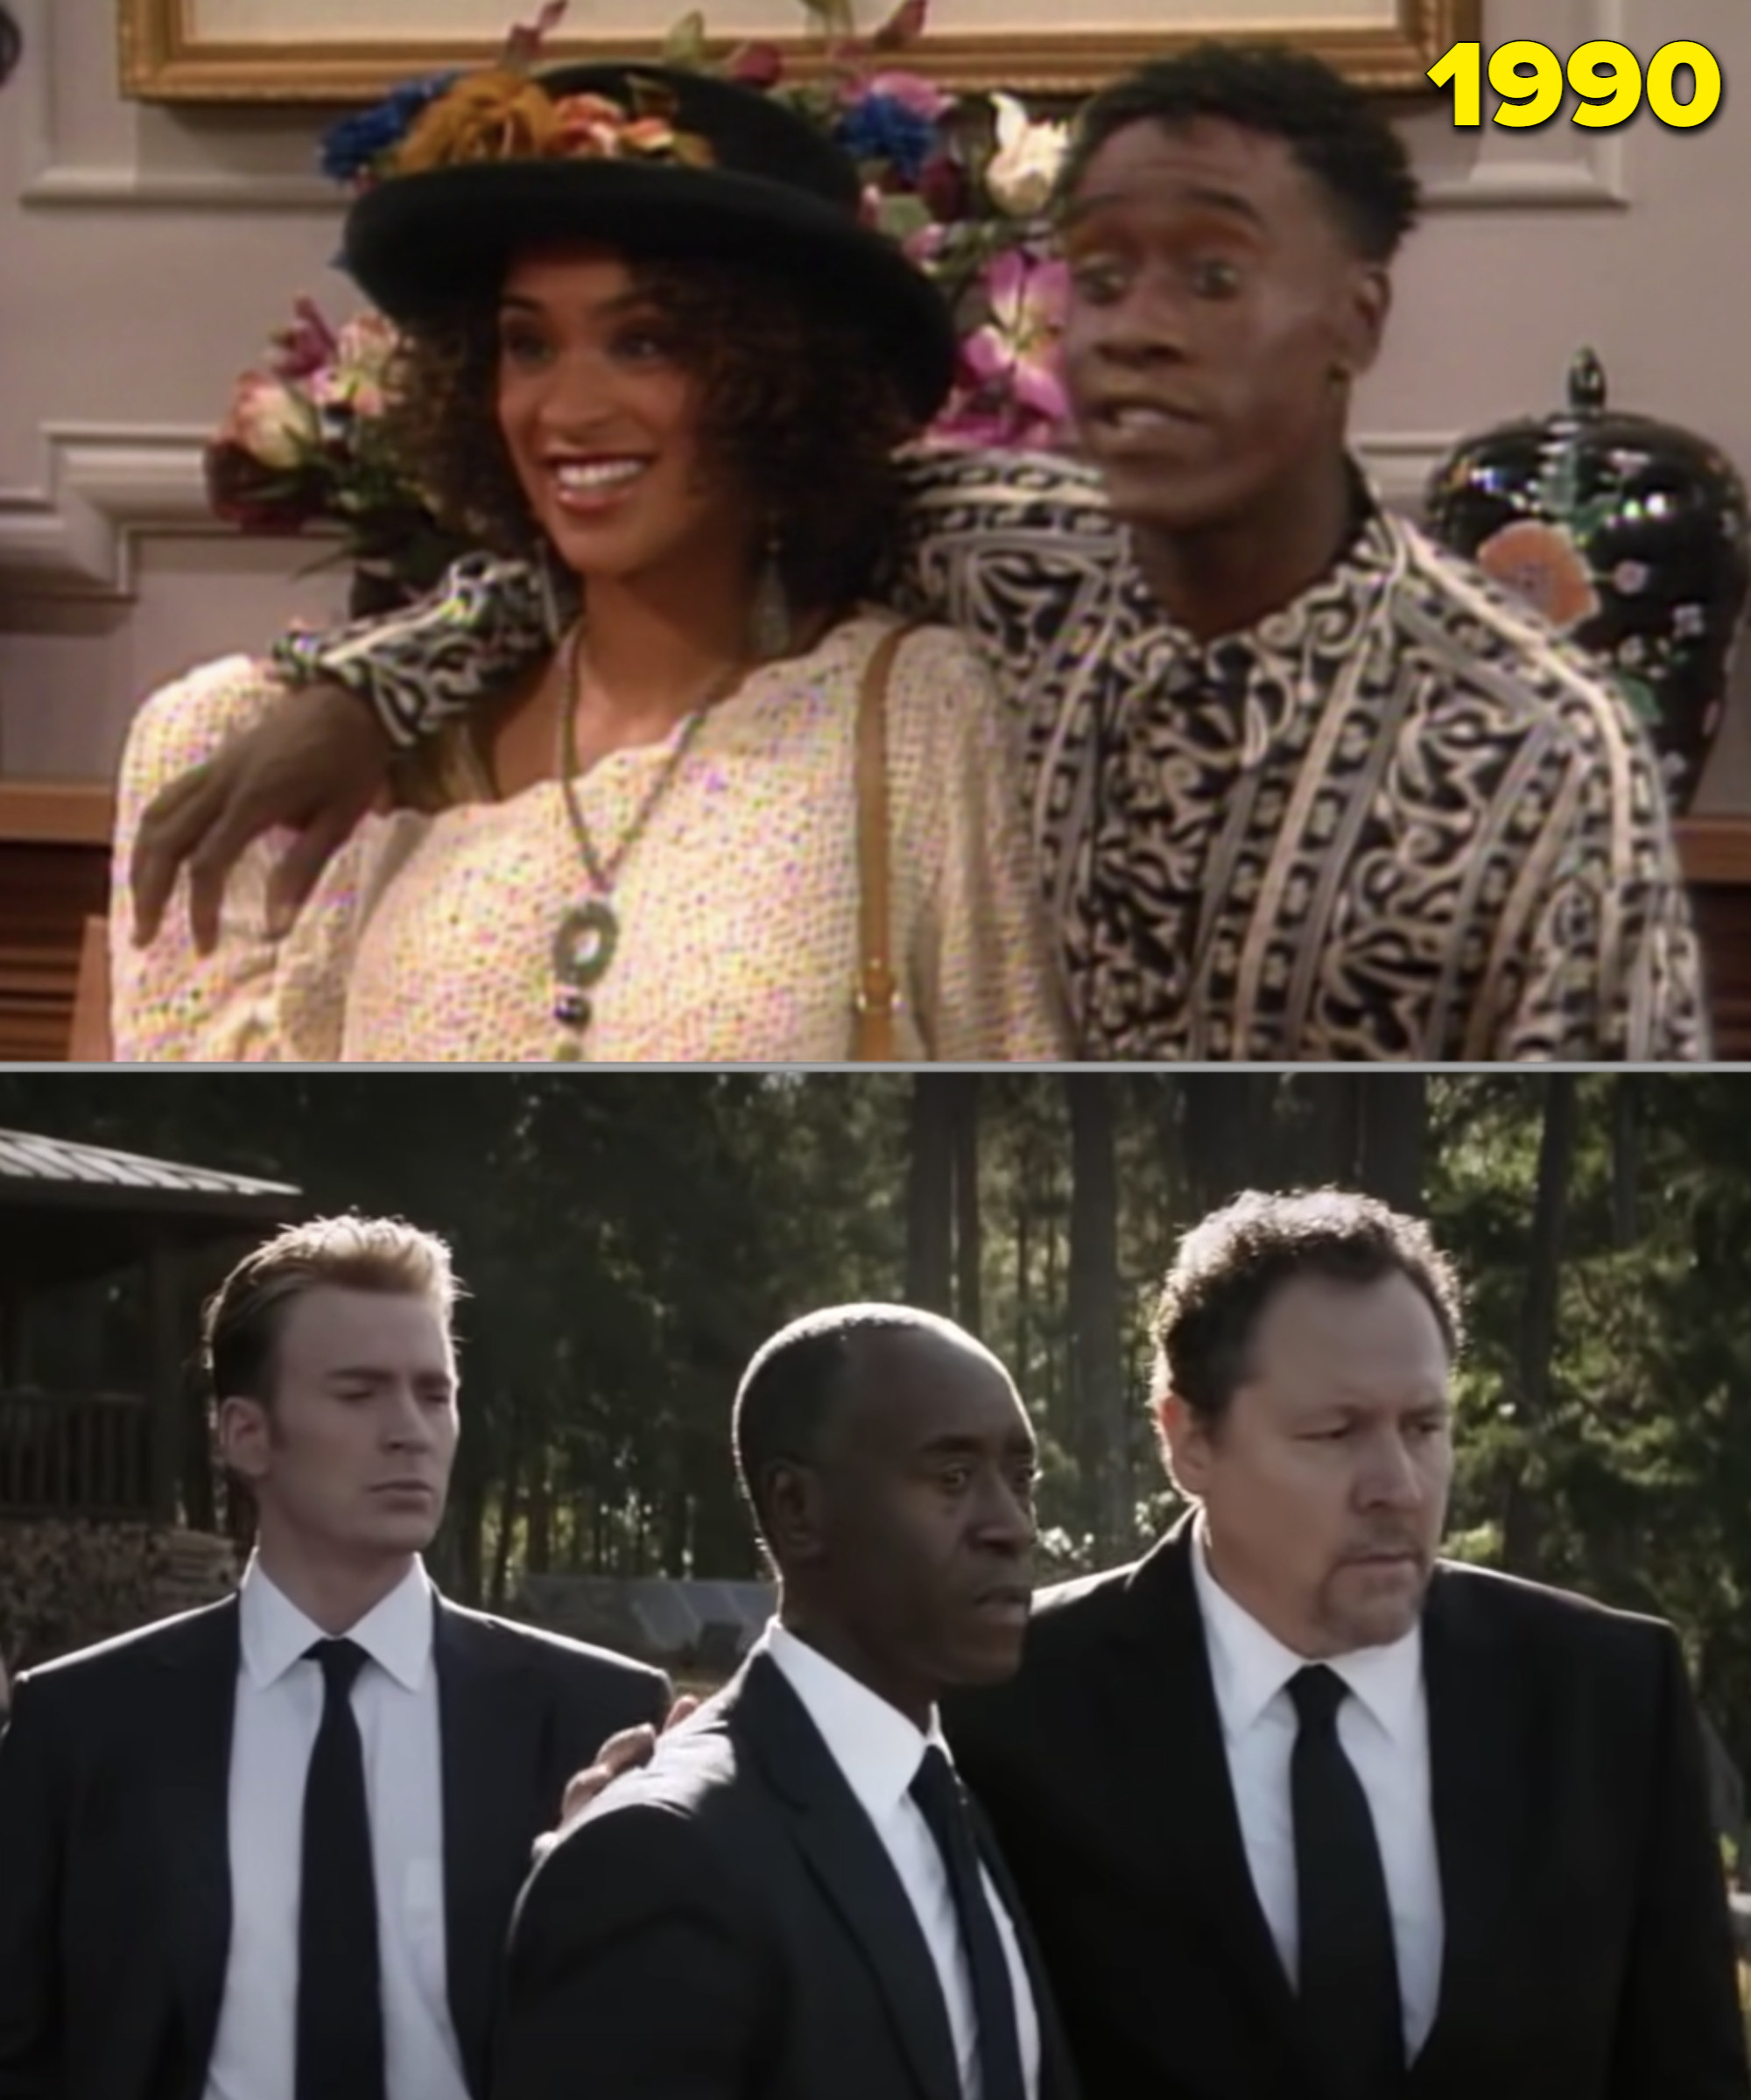 """Don Cheadle in """"Fresh Prince"""" with his arm around Hilary vs. him at Tony Stark's funeral in """"Avengers: Endgame"""""""